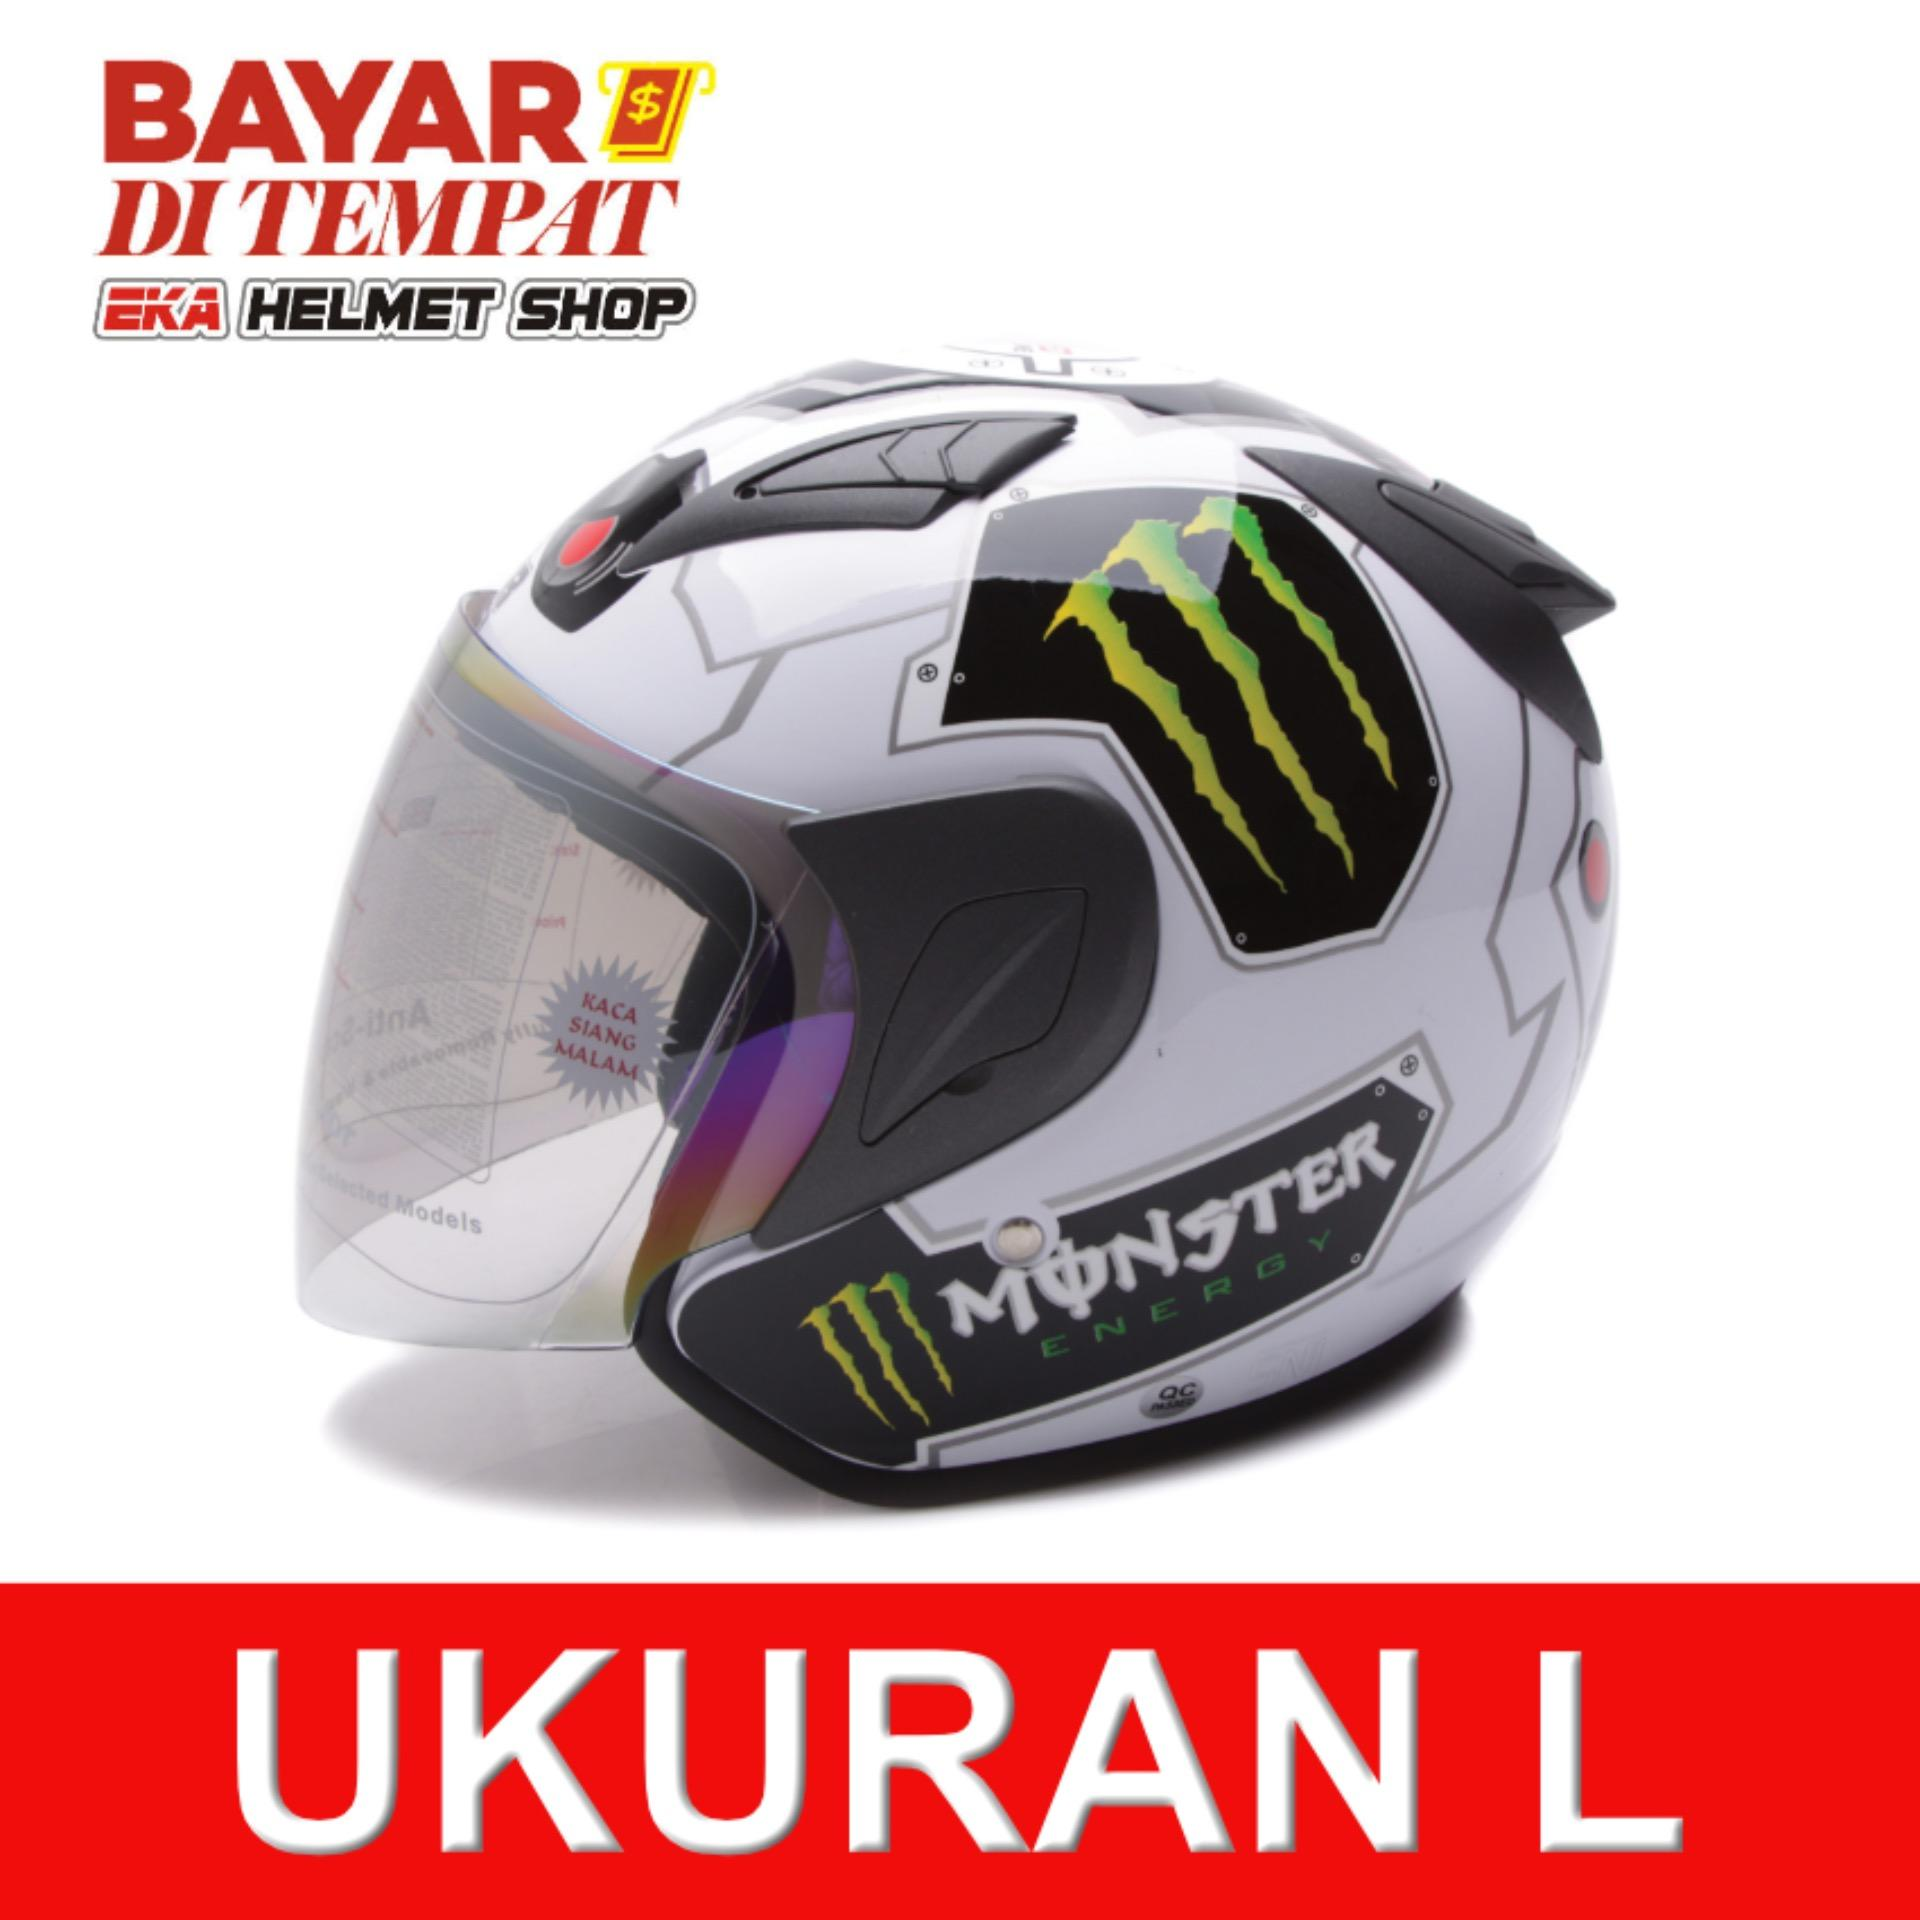 MSR Helmet Javelin - Monster - Putih